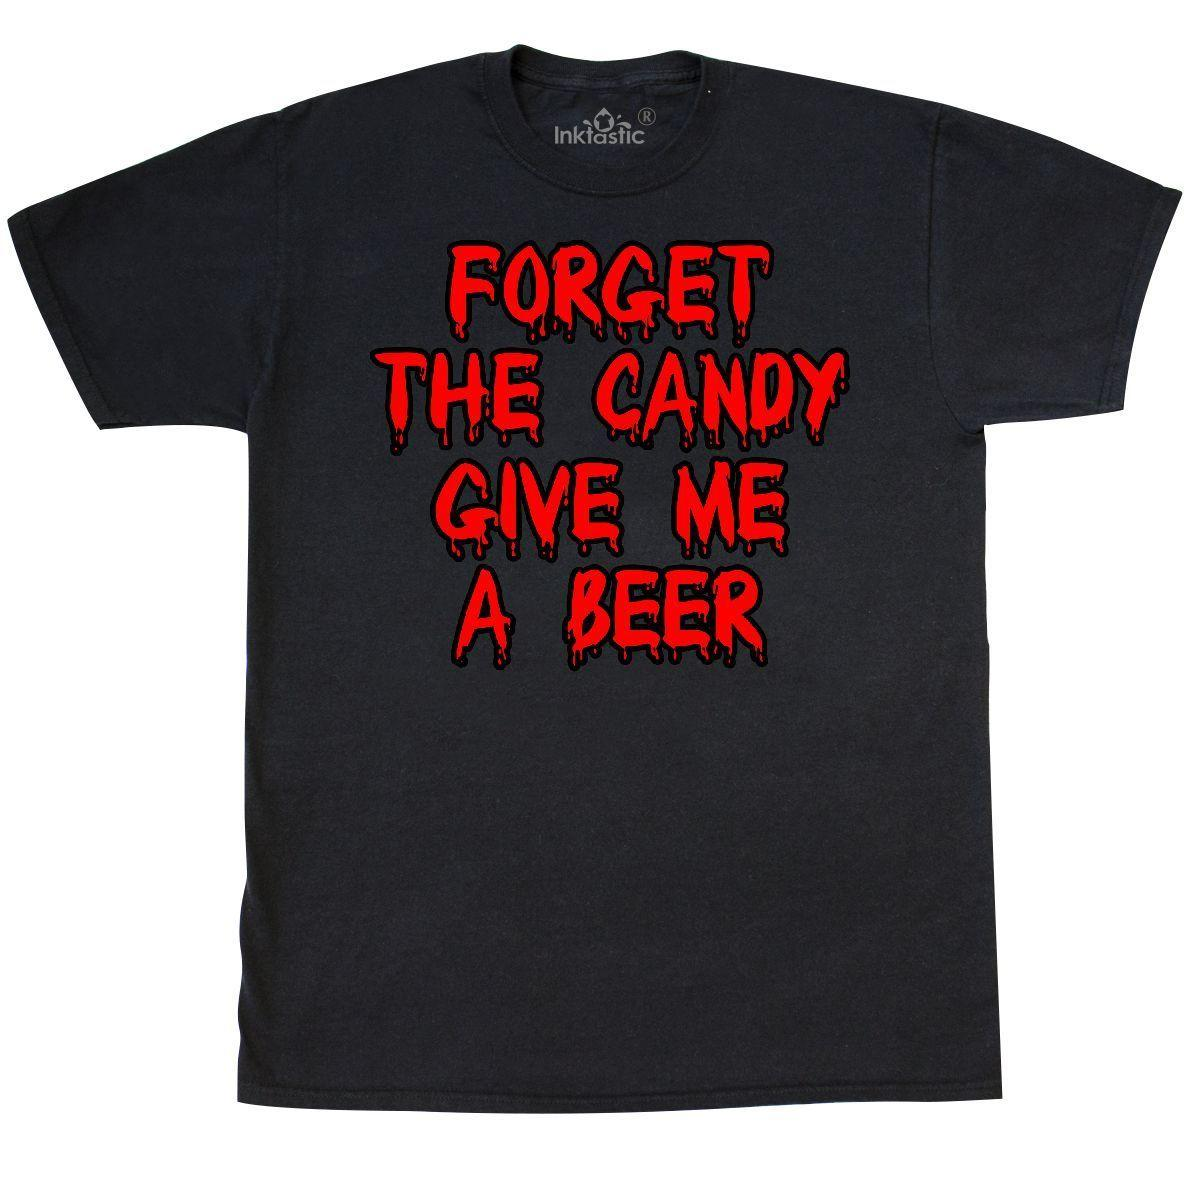 Inktastic Forget The Candy Give Me A Beer T-Shirt Halloween Adult Alcohol  Drinks